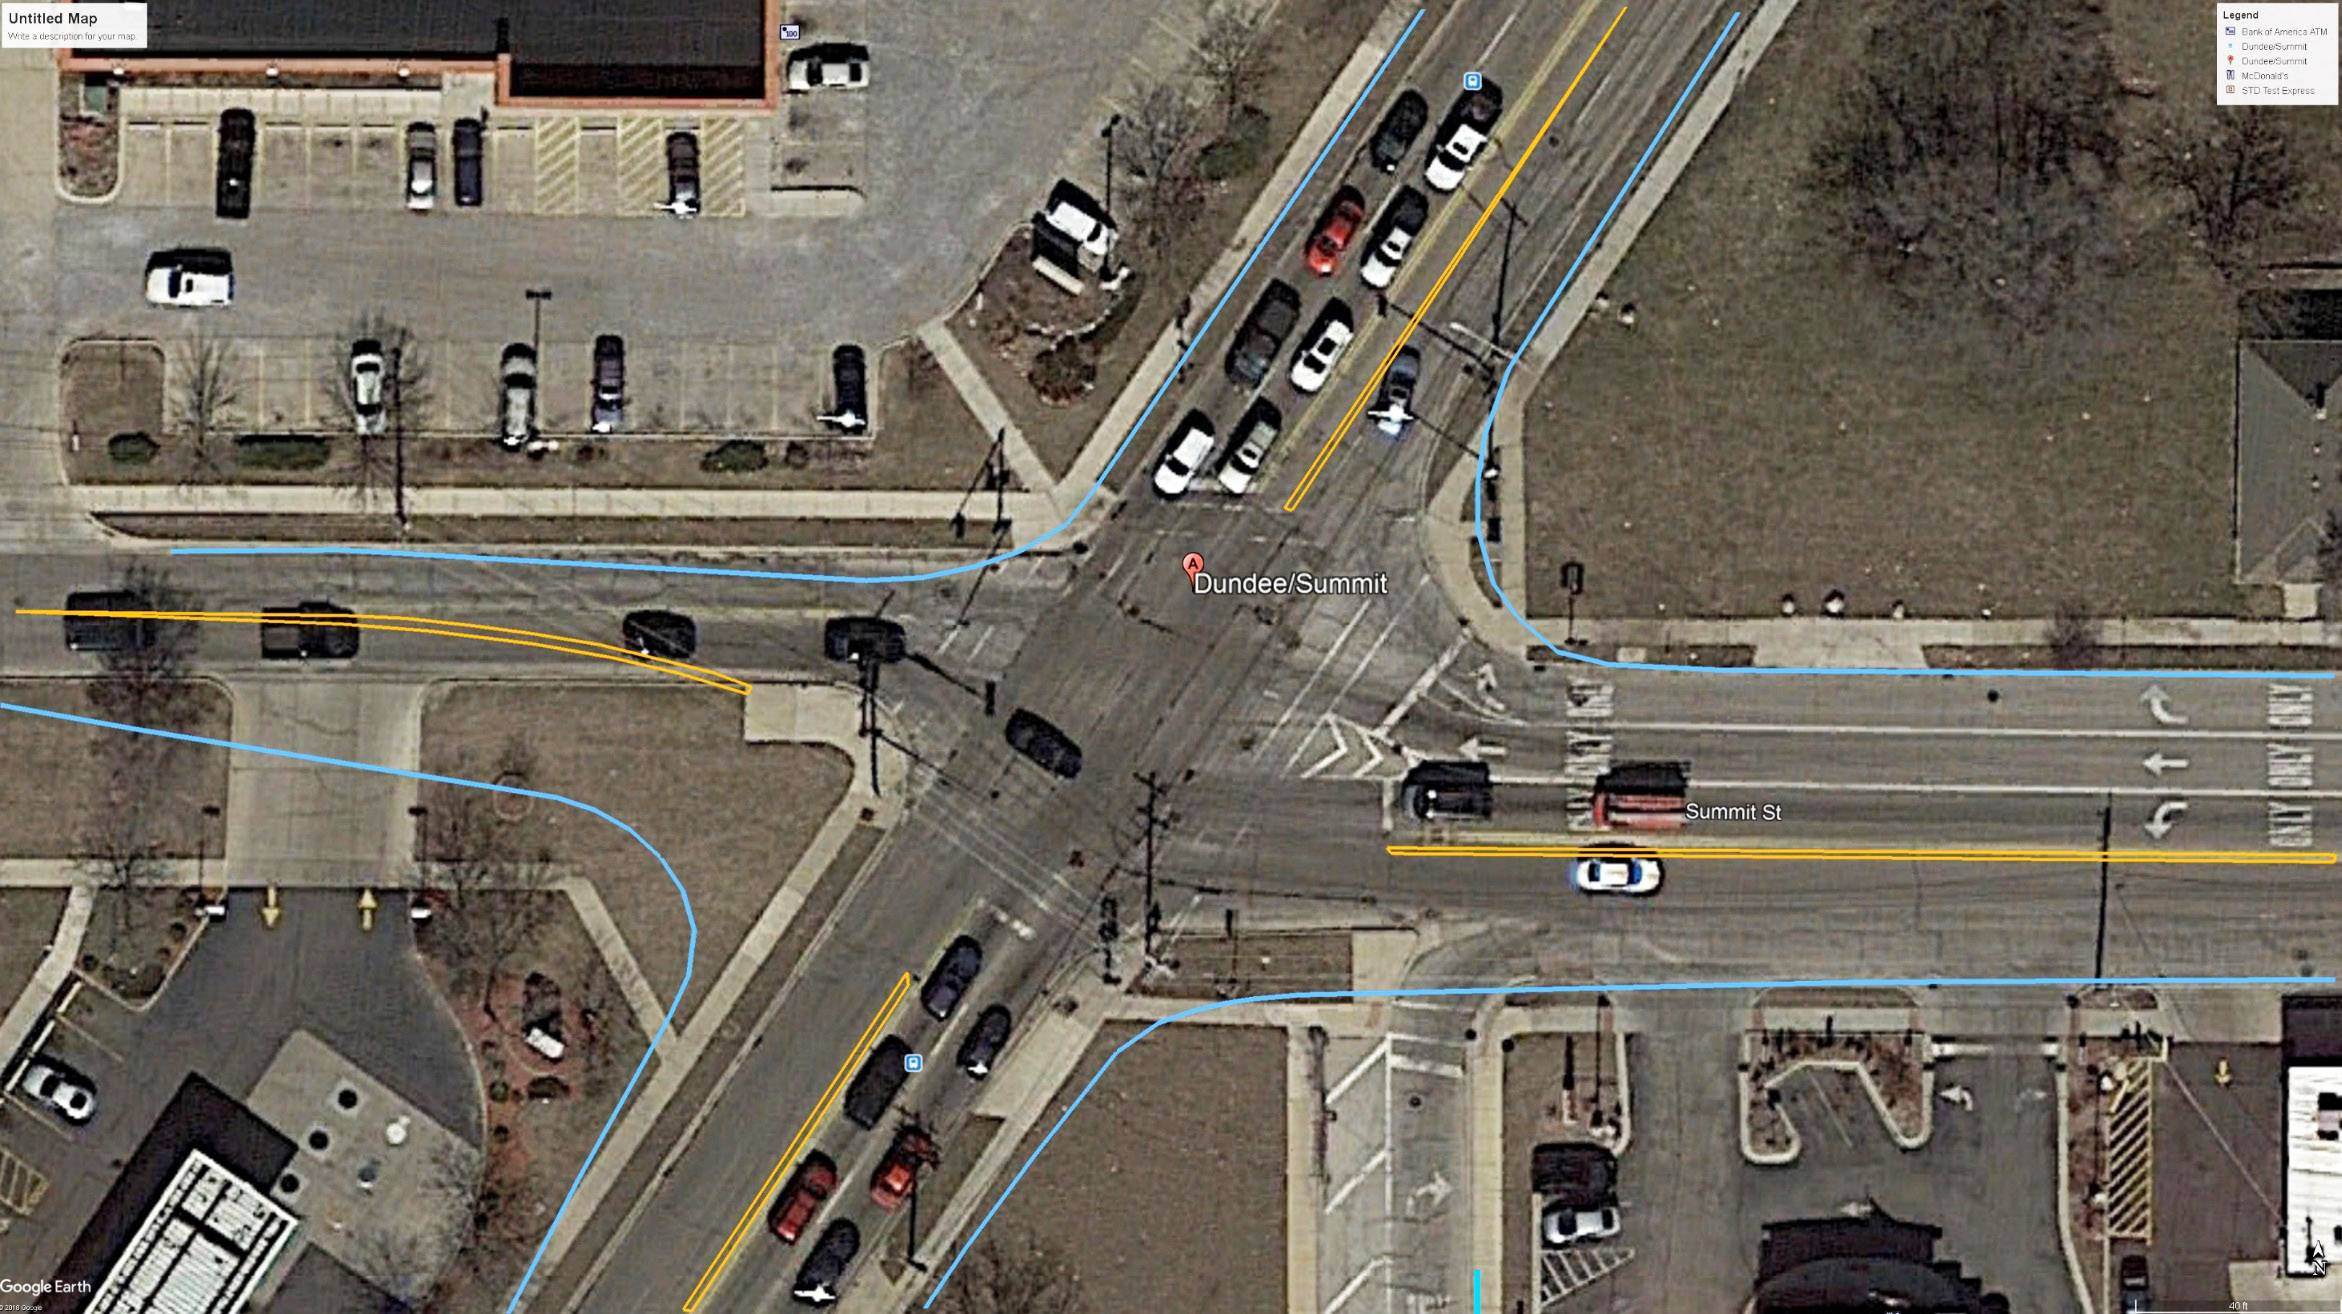 Elgin council looks at proposed Dundee/Summit alignment